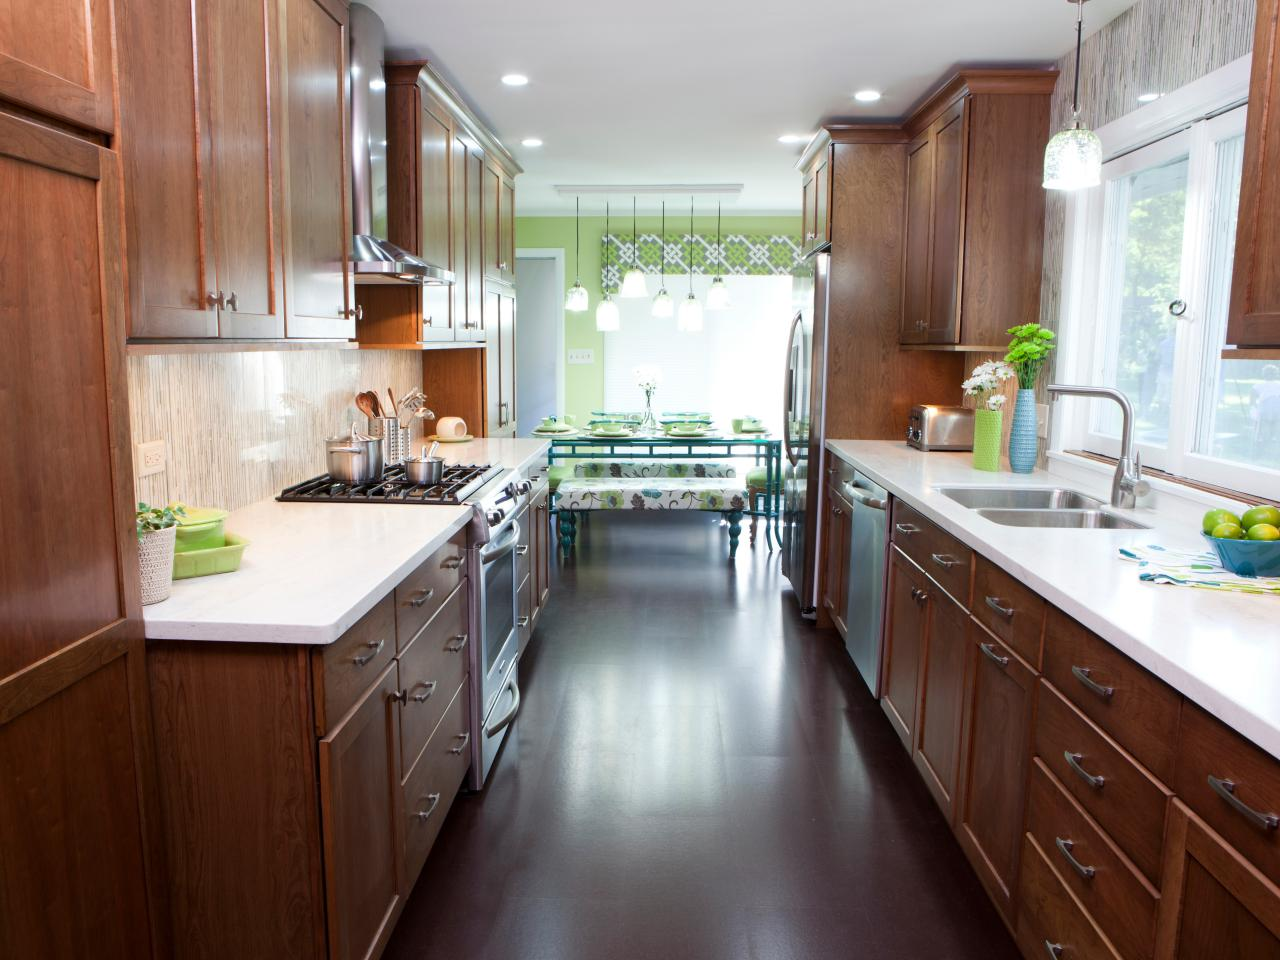 Galley kitchen designs hgtv for Ideas for remodeling kitchen